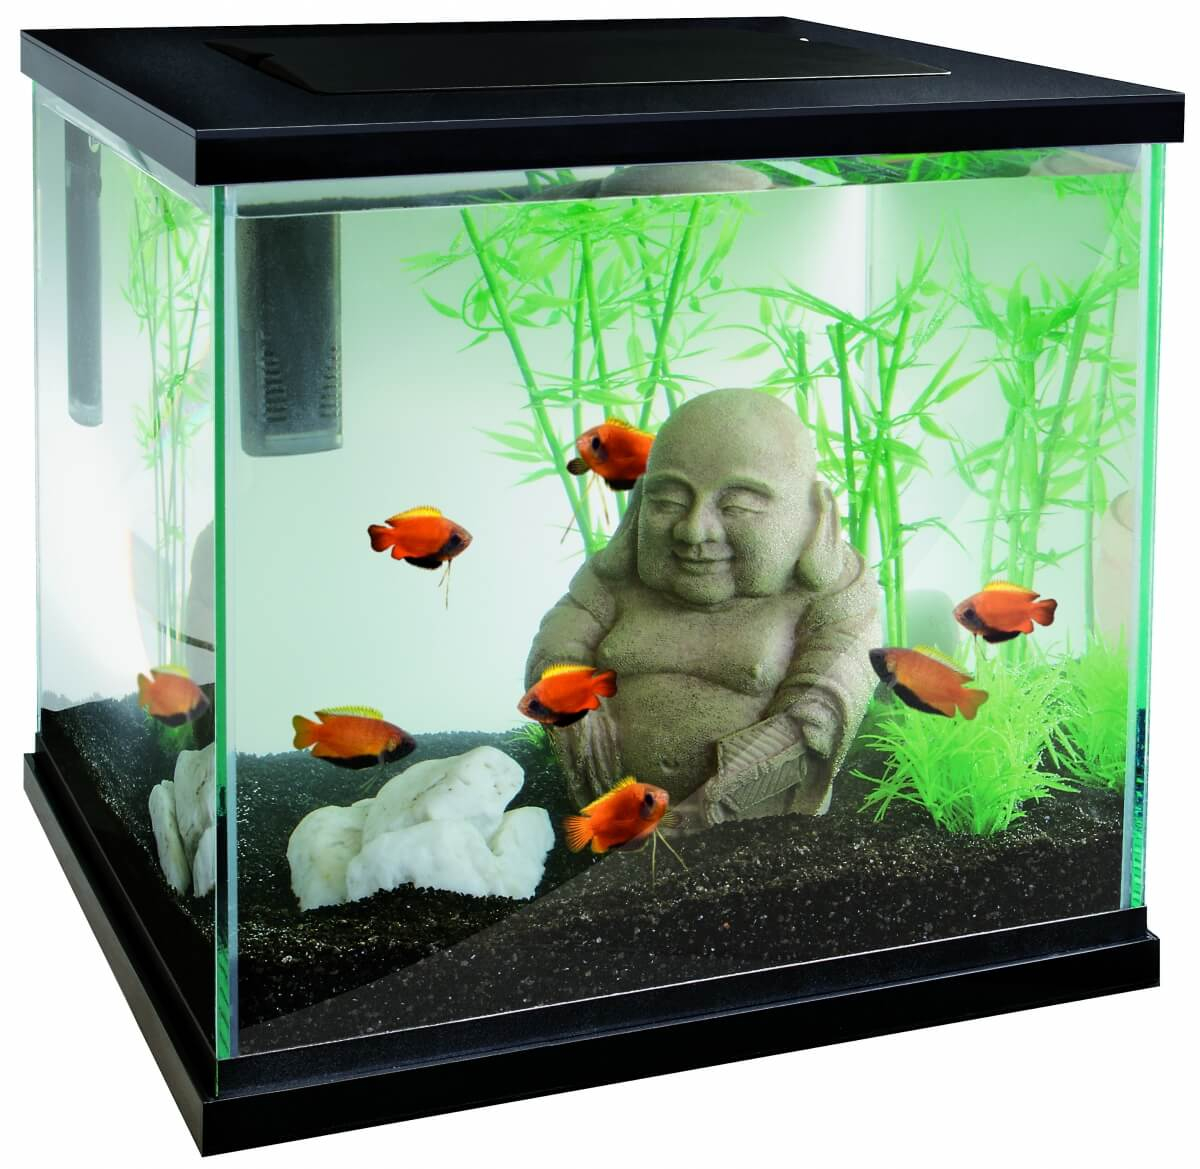 Aquarium zen 30 Superfish - blanc ou noir_0